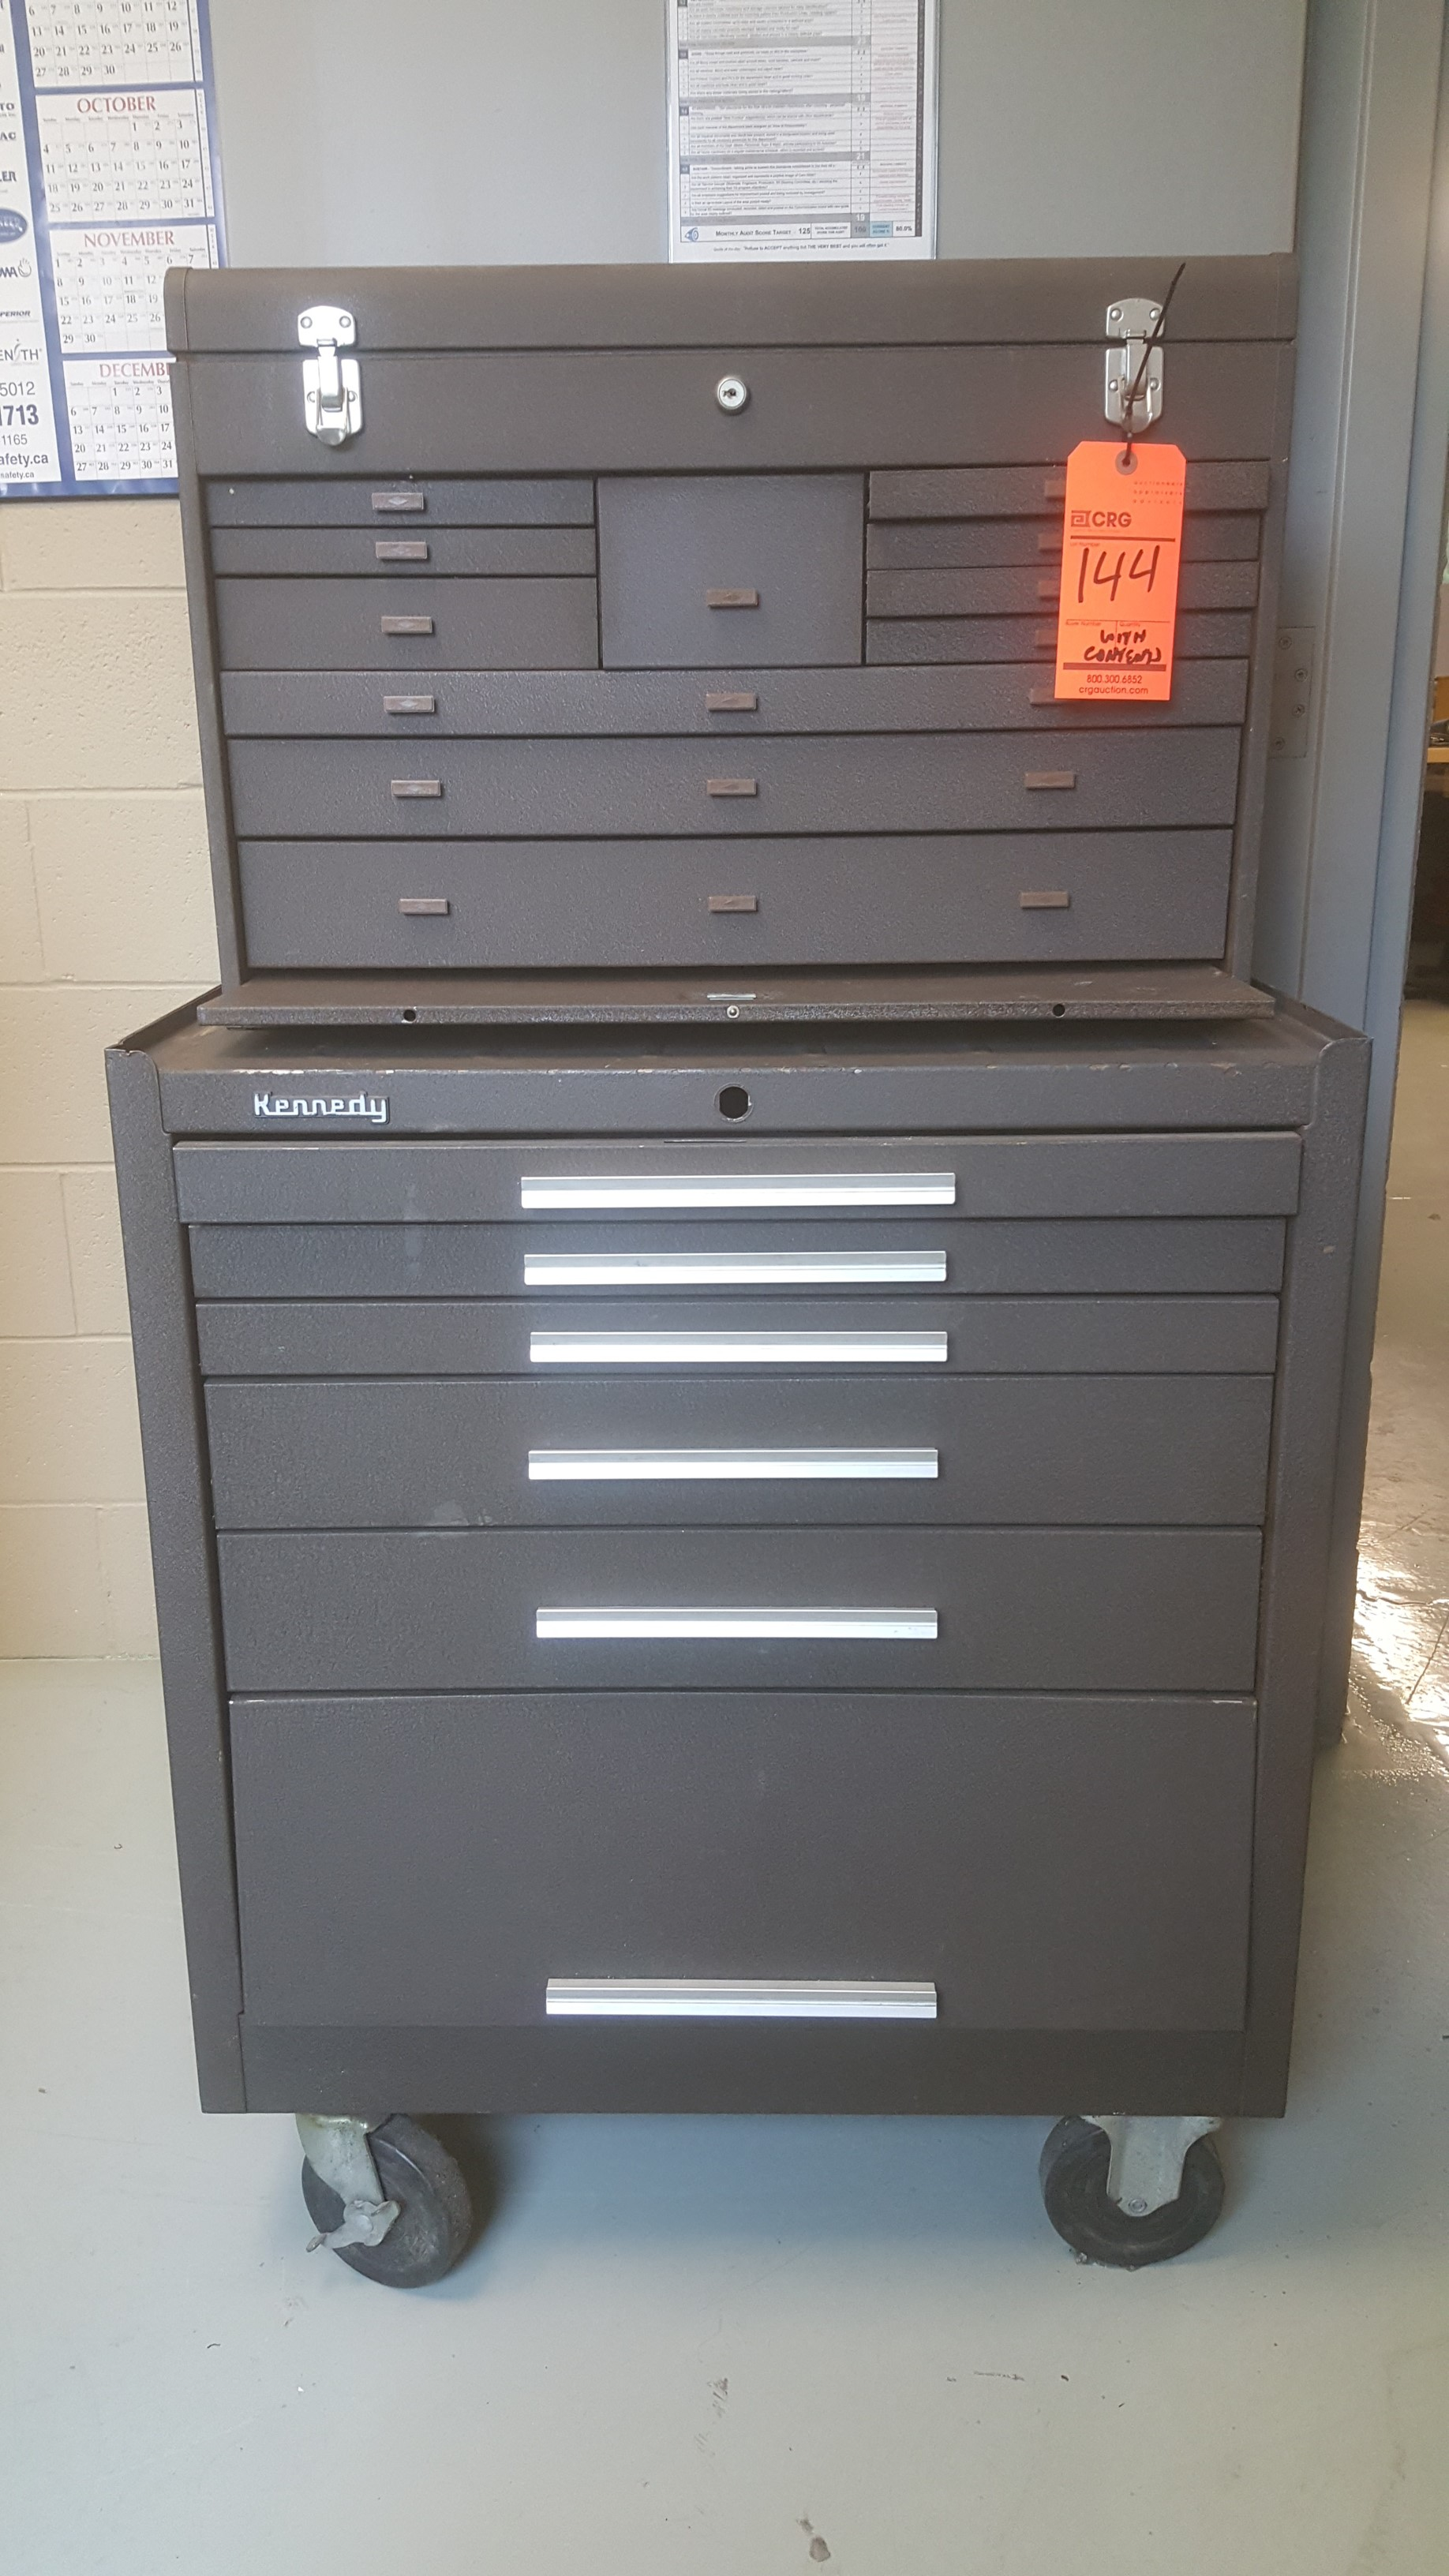 Lot 144 - Set of (2) KENNEDY tool chest and cabinets